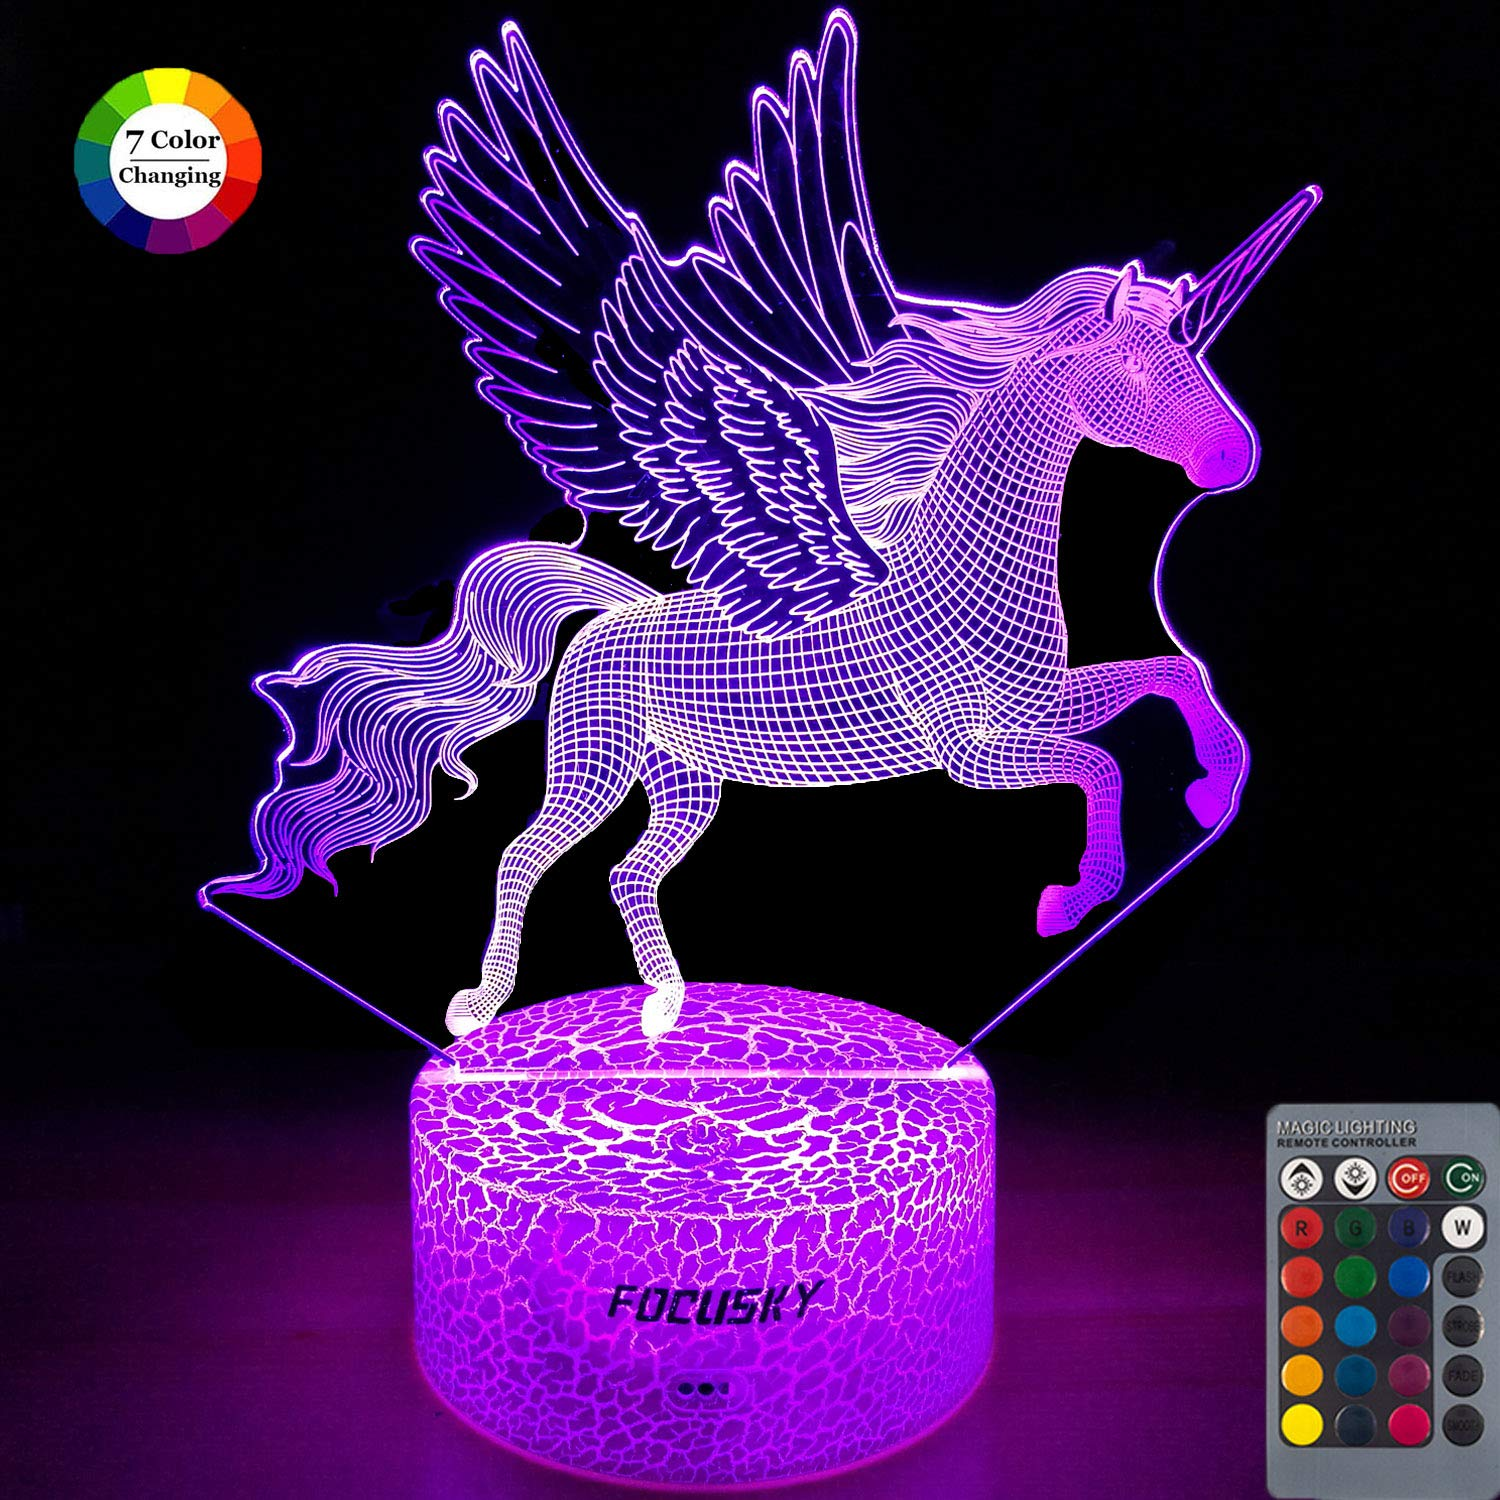 Focusky Unicorn Night Light for Kids,Dimmable LED Nightlight Bedside Lamp,16 Colors+7 Colors Changing,Touch&Remote Control,Best Unicorn Toys Birthday Christmas Gifts for Girls Boys by Focusky